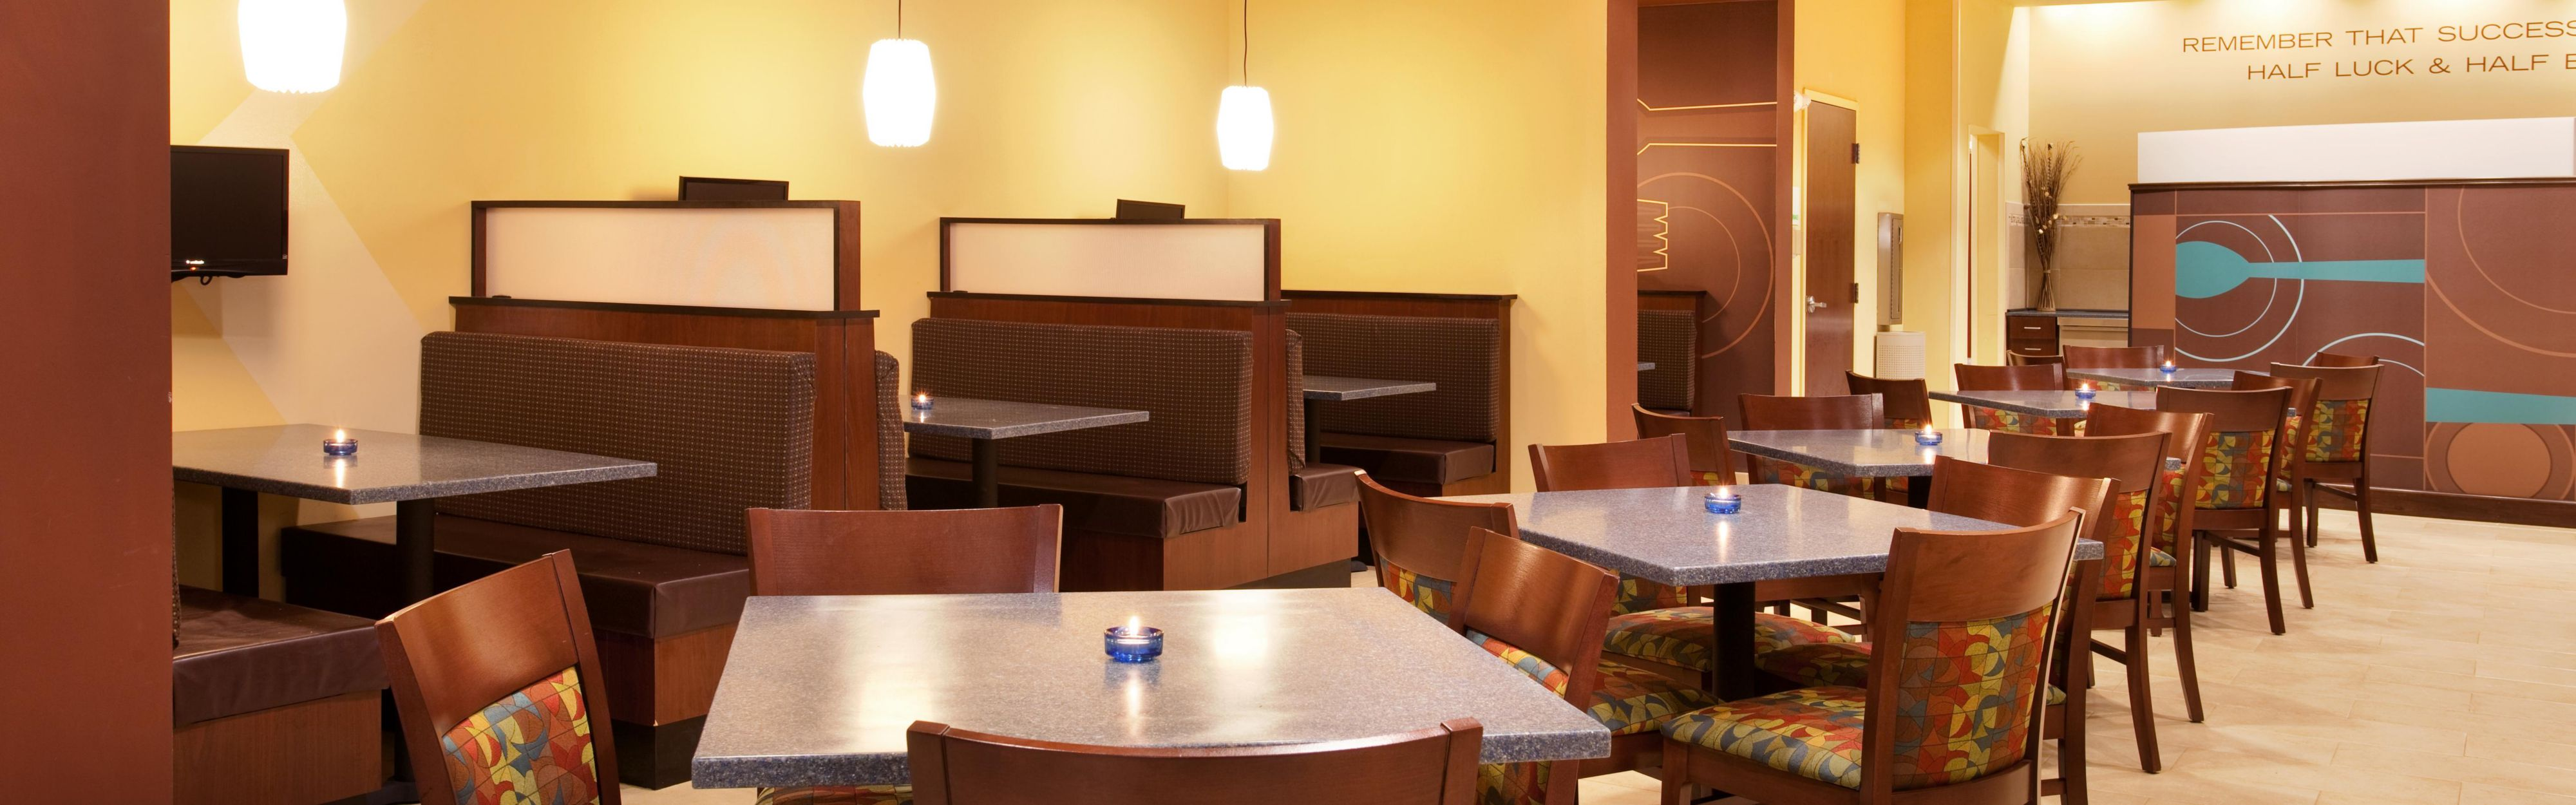 Holiday Inn St. Louis-Fairview Heights image 3